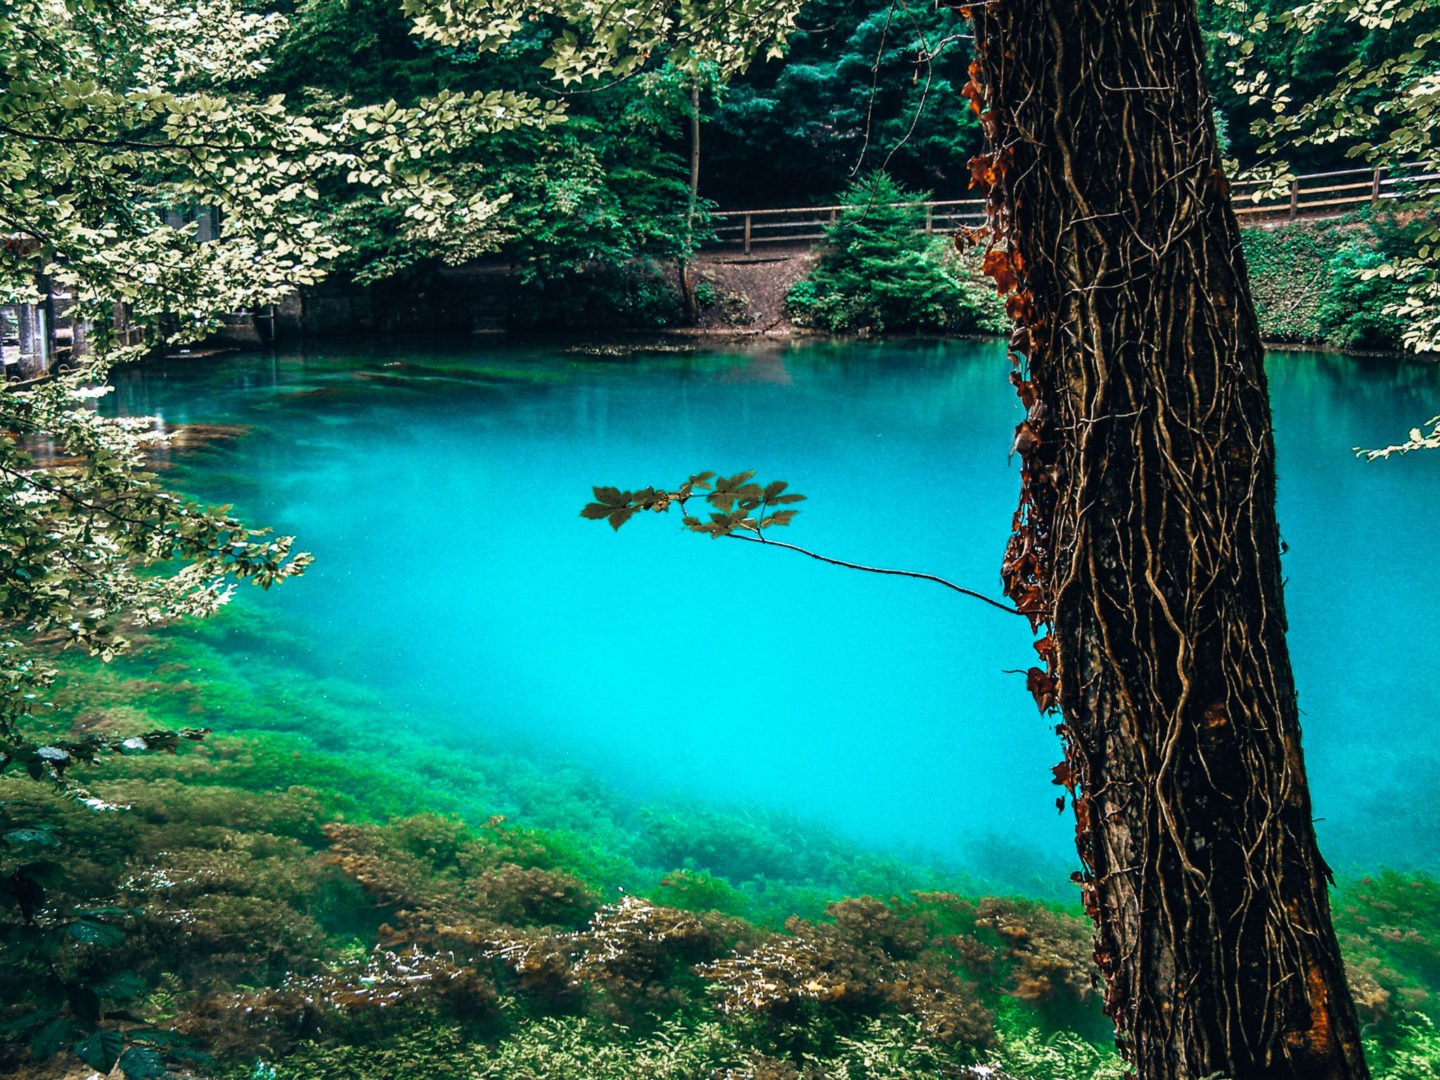 Blautopf, Germany